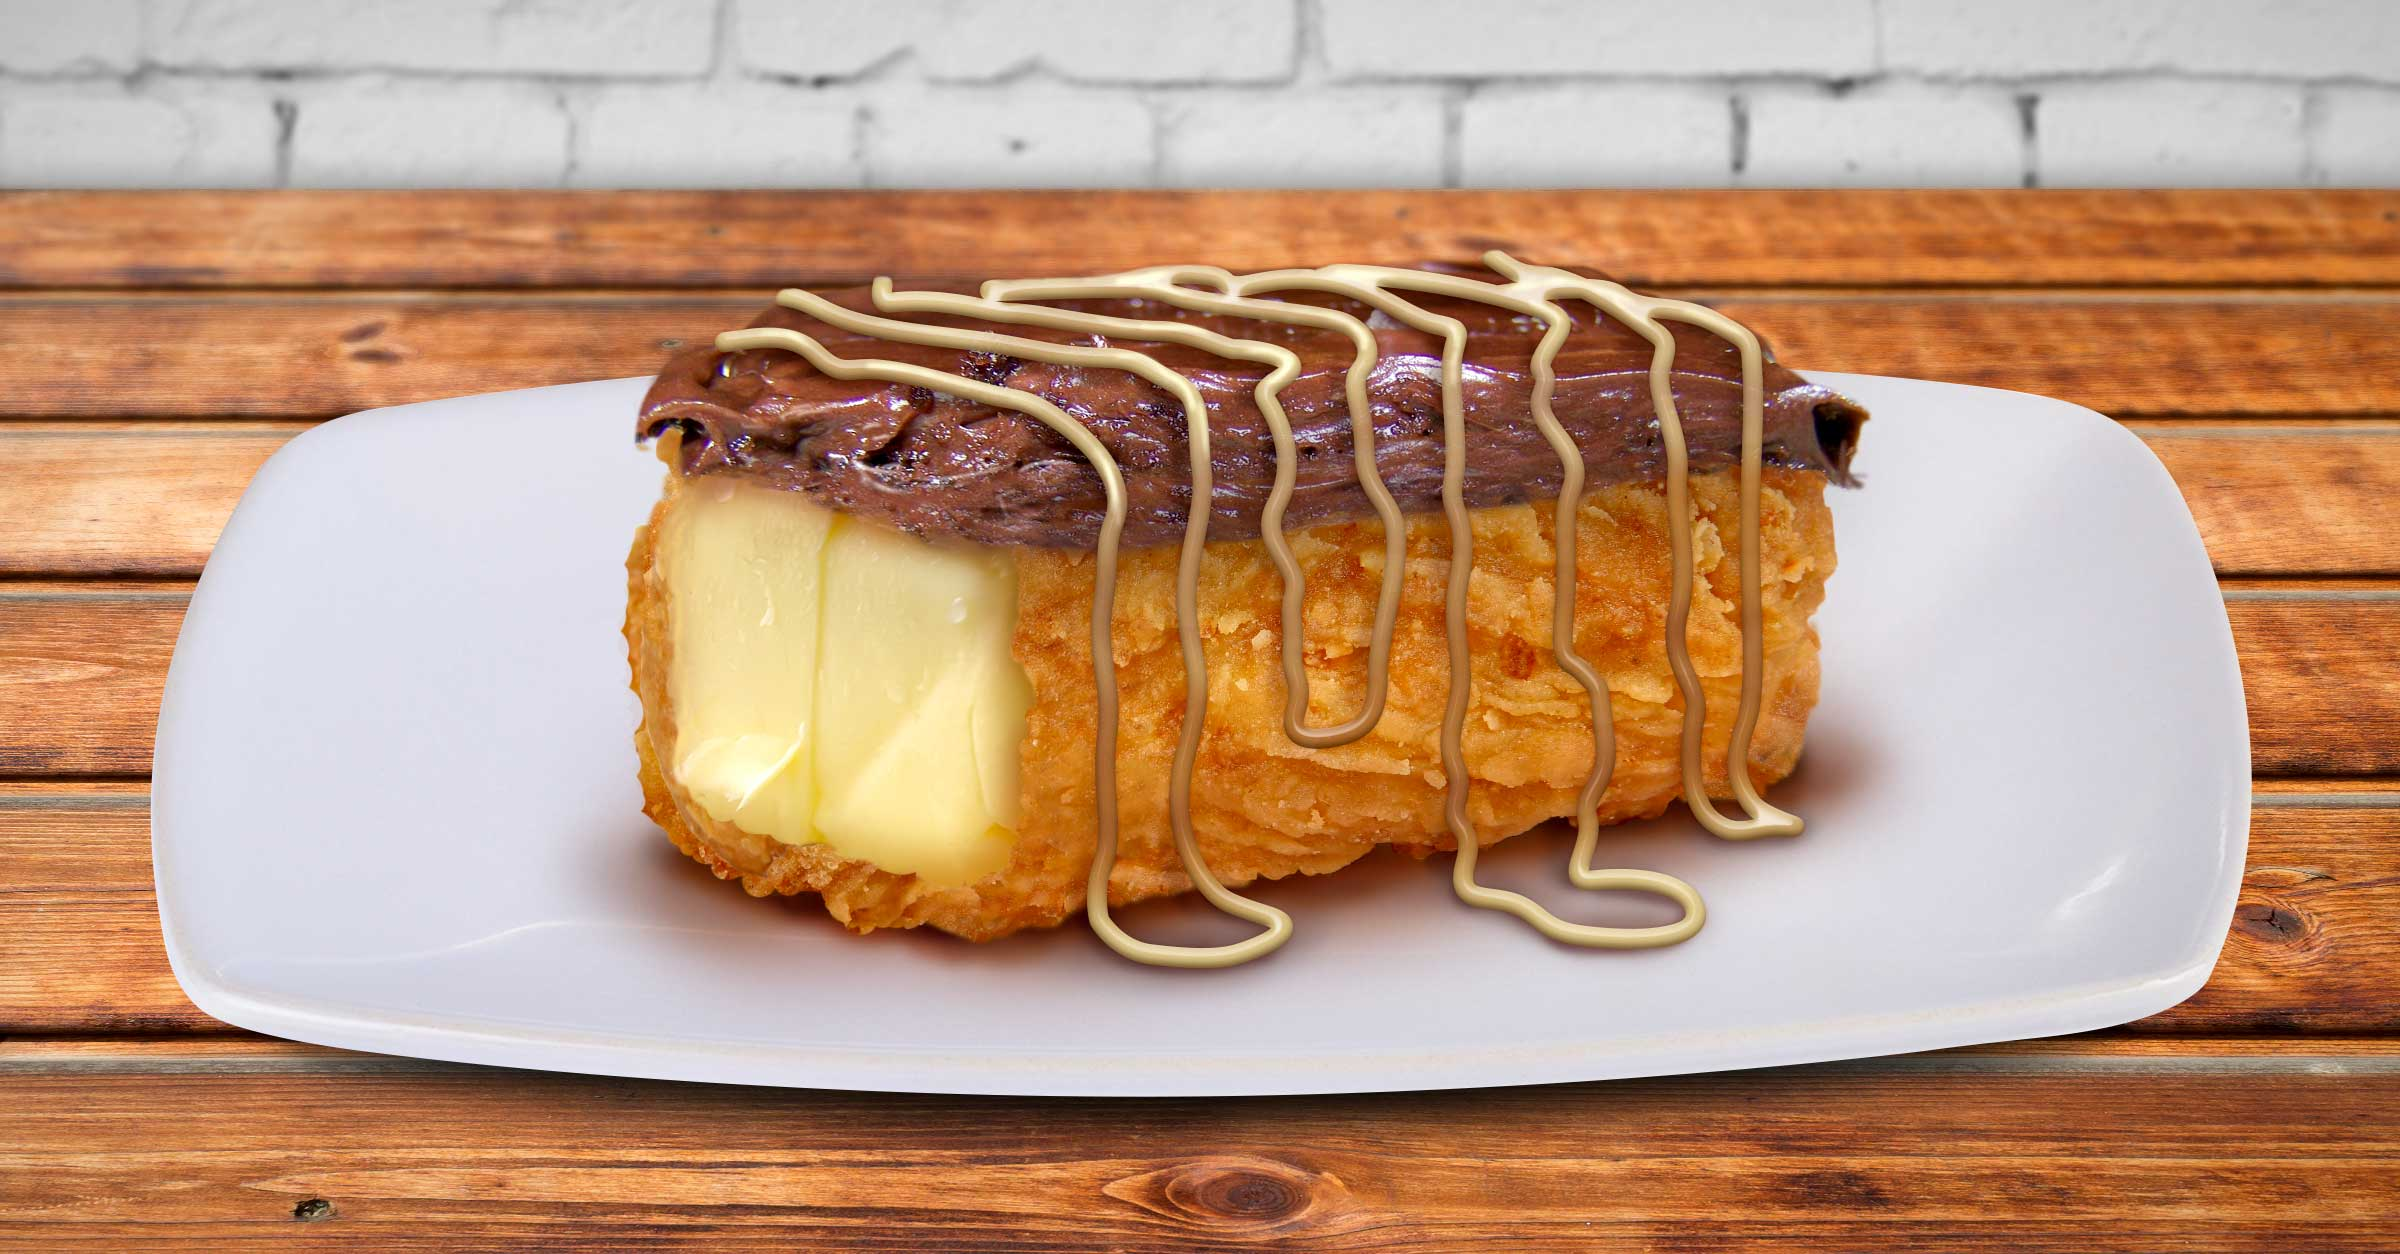 Breaded, Deep Fried, Chocolate Covered Butter Stick with Sweet Lard Drizzle